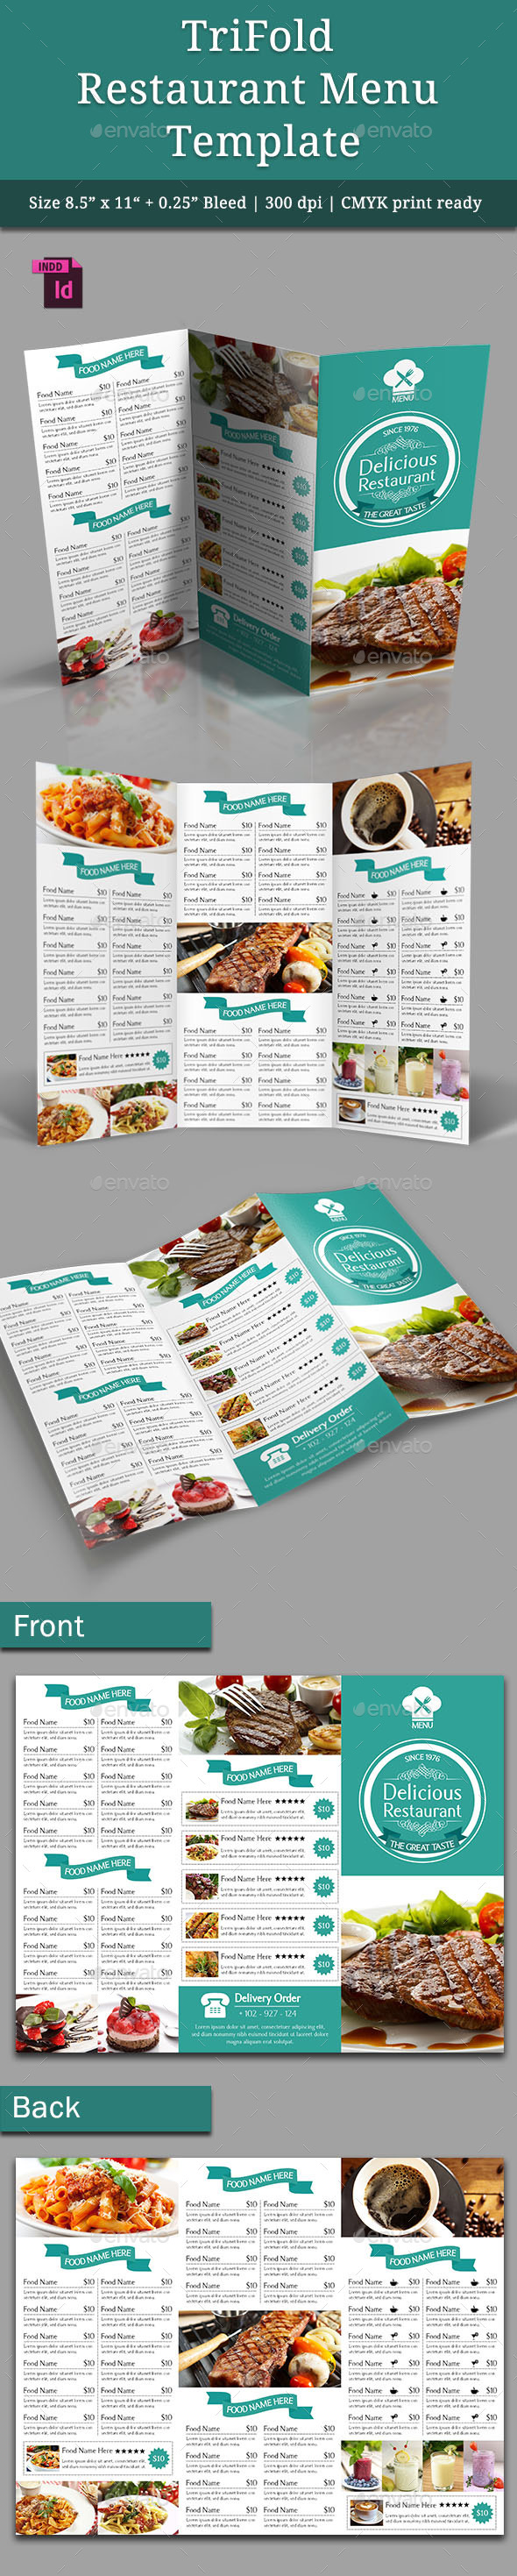 GraphicRiver TriFold Restaurant Menu Template Vol 4 9566842